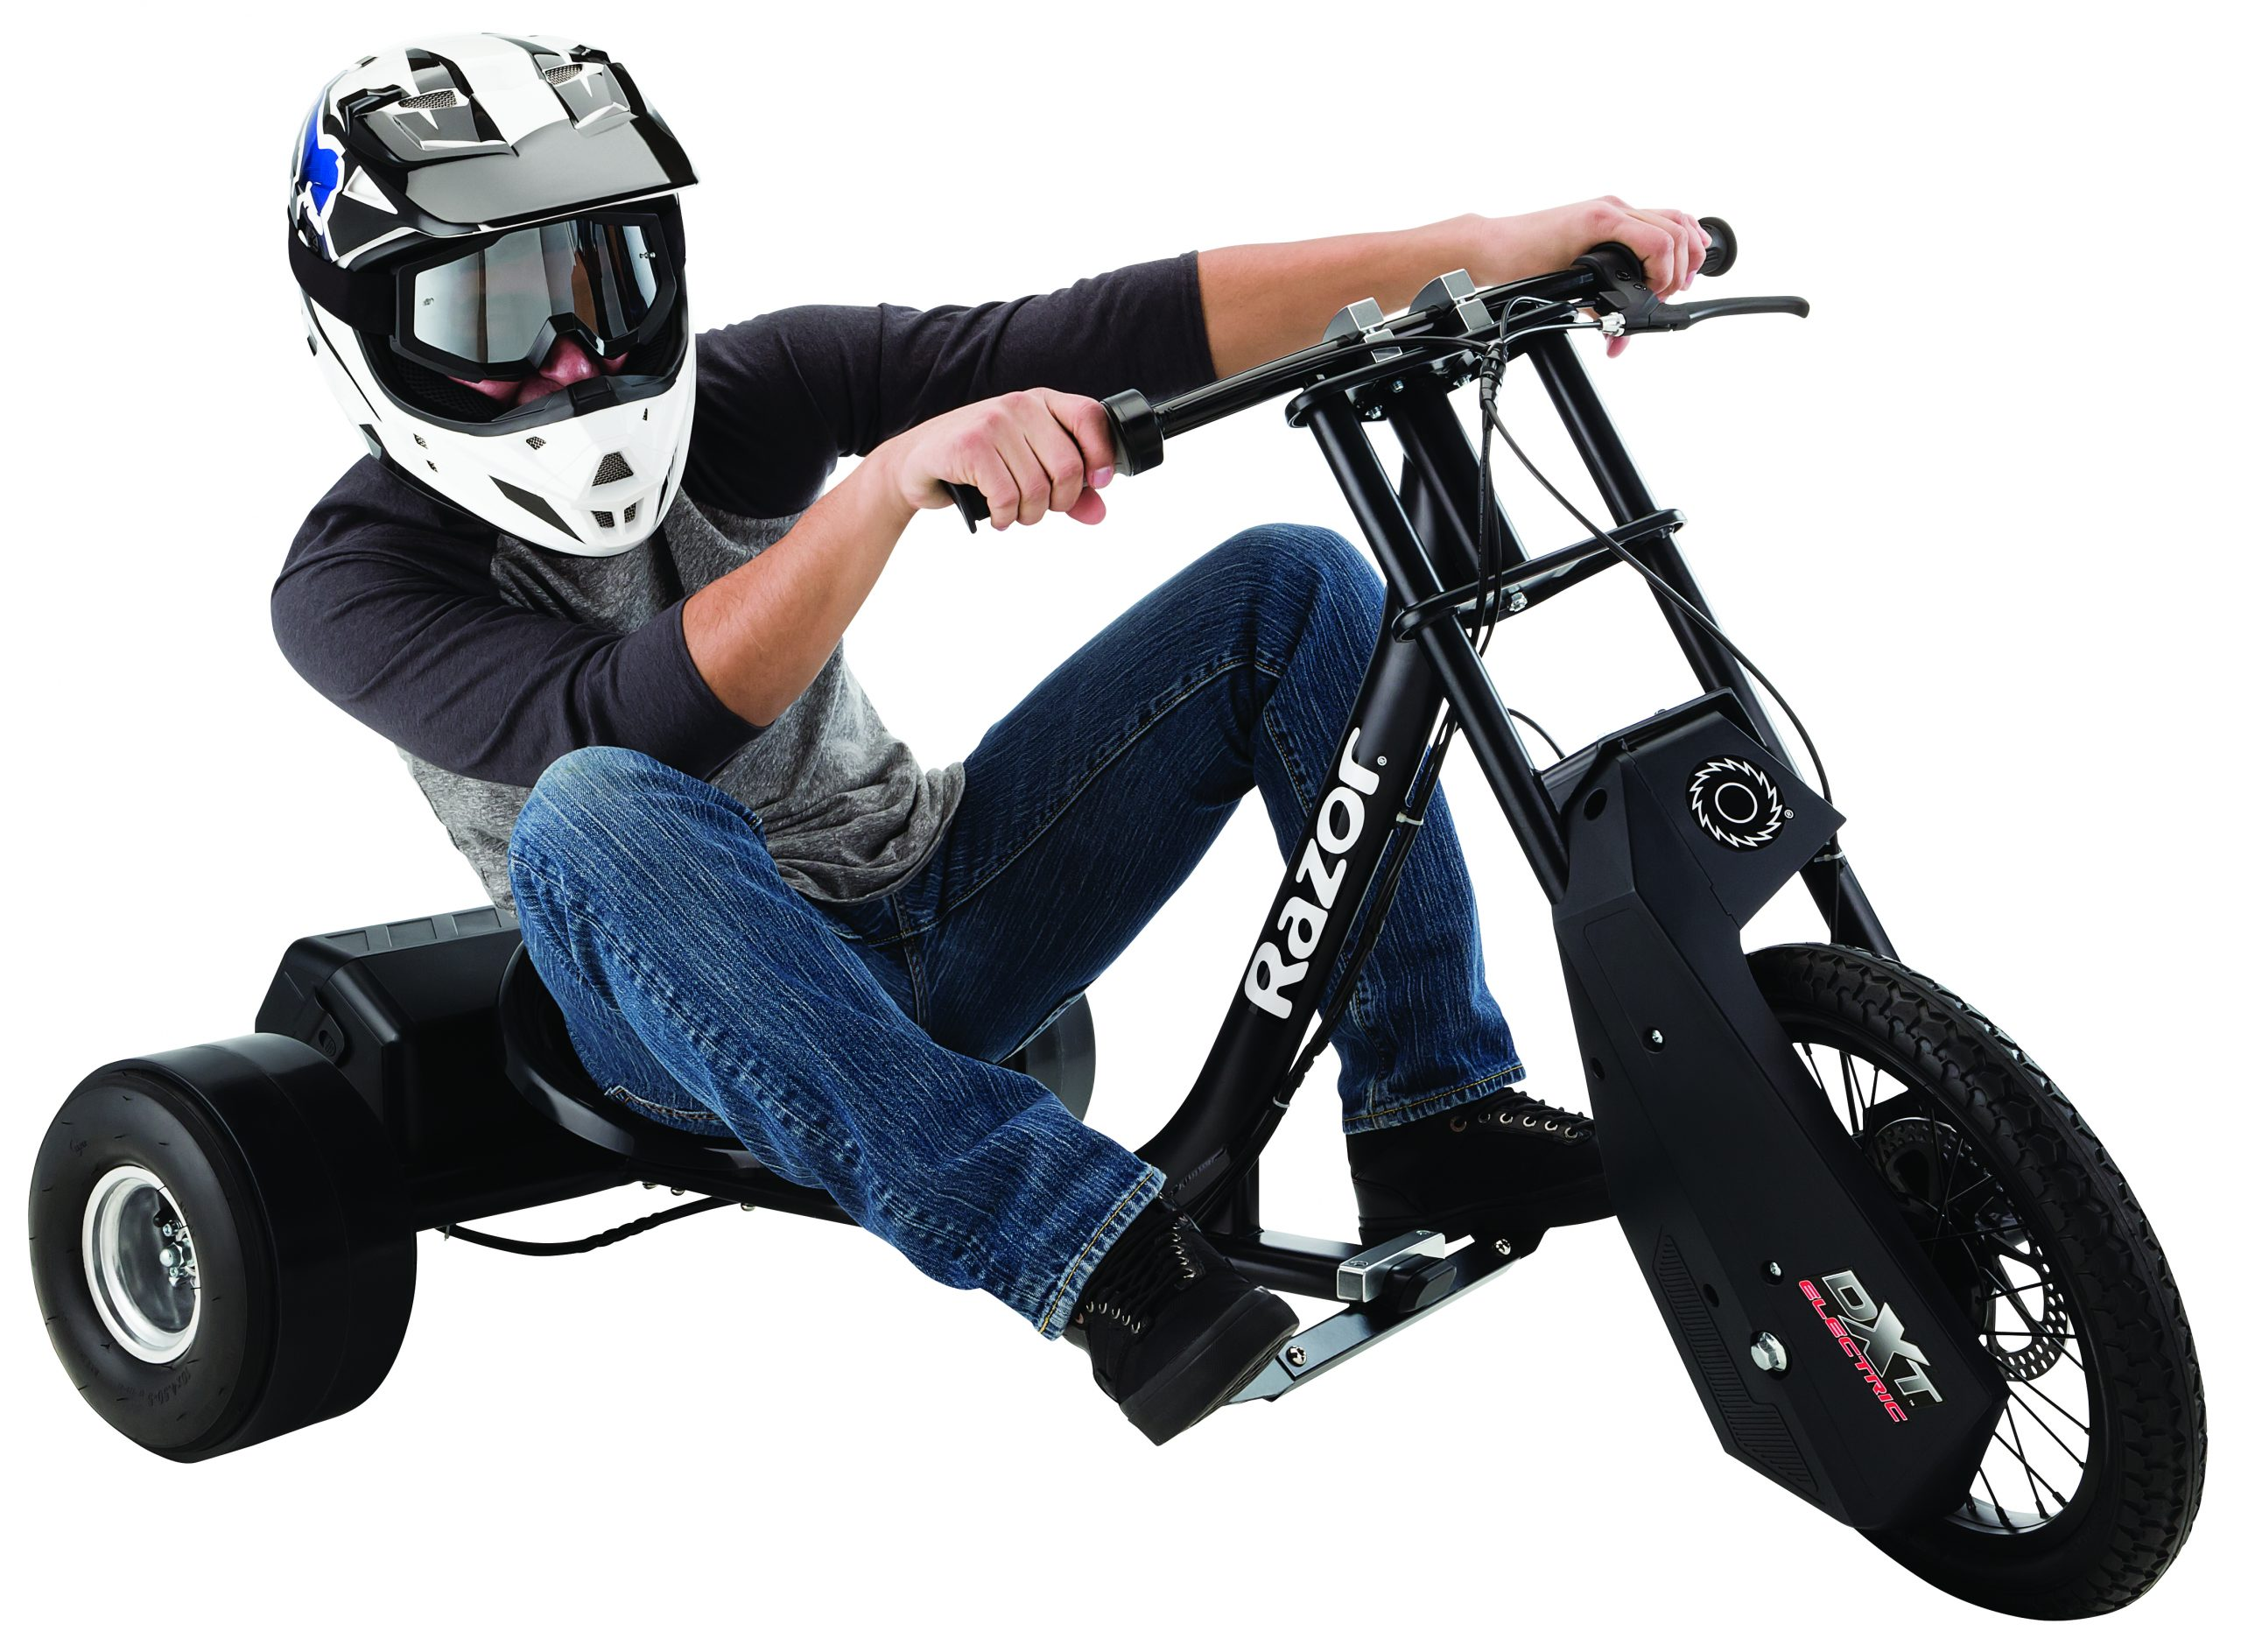 To Drastically Improve Your Tricycle For Adults